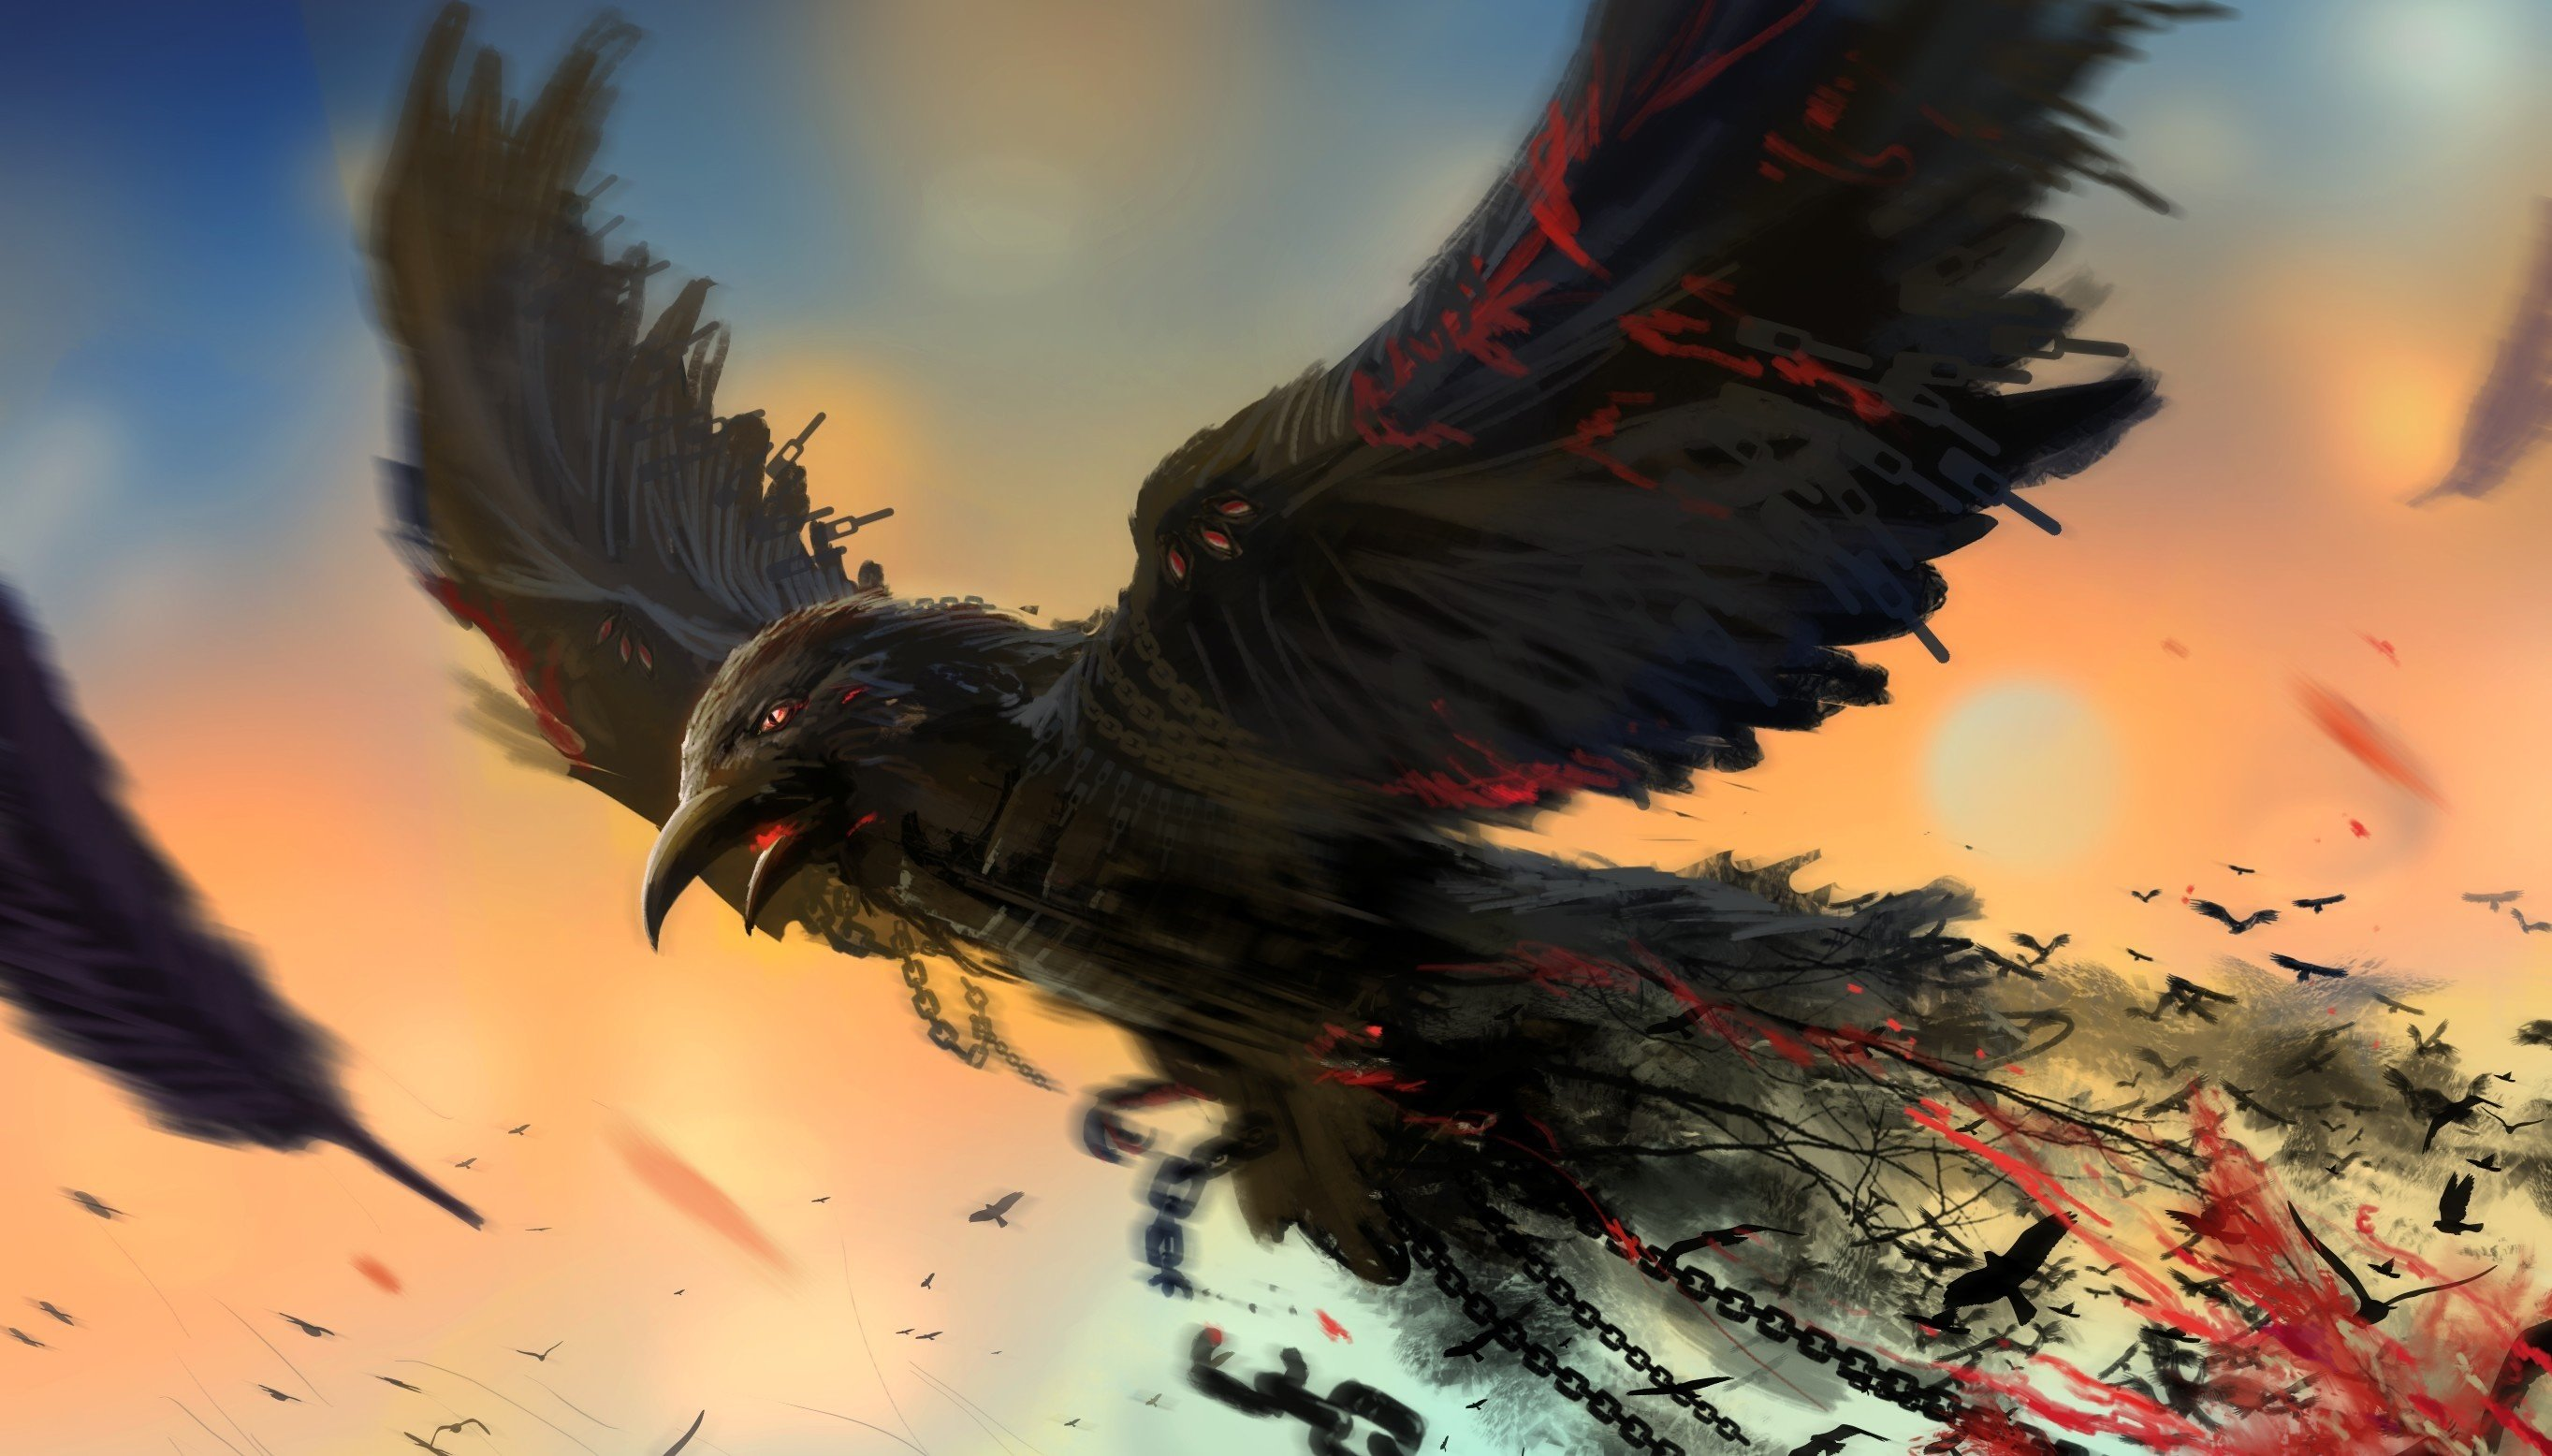 Bird chain art raven dark blood wallpaper 2727x1556 281544 2727x1556